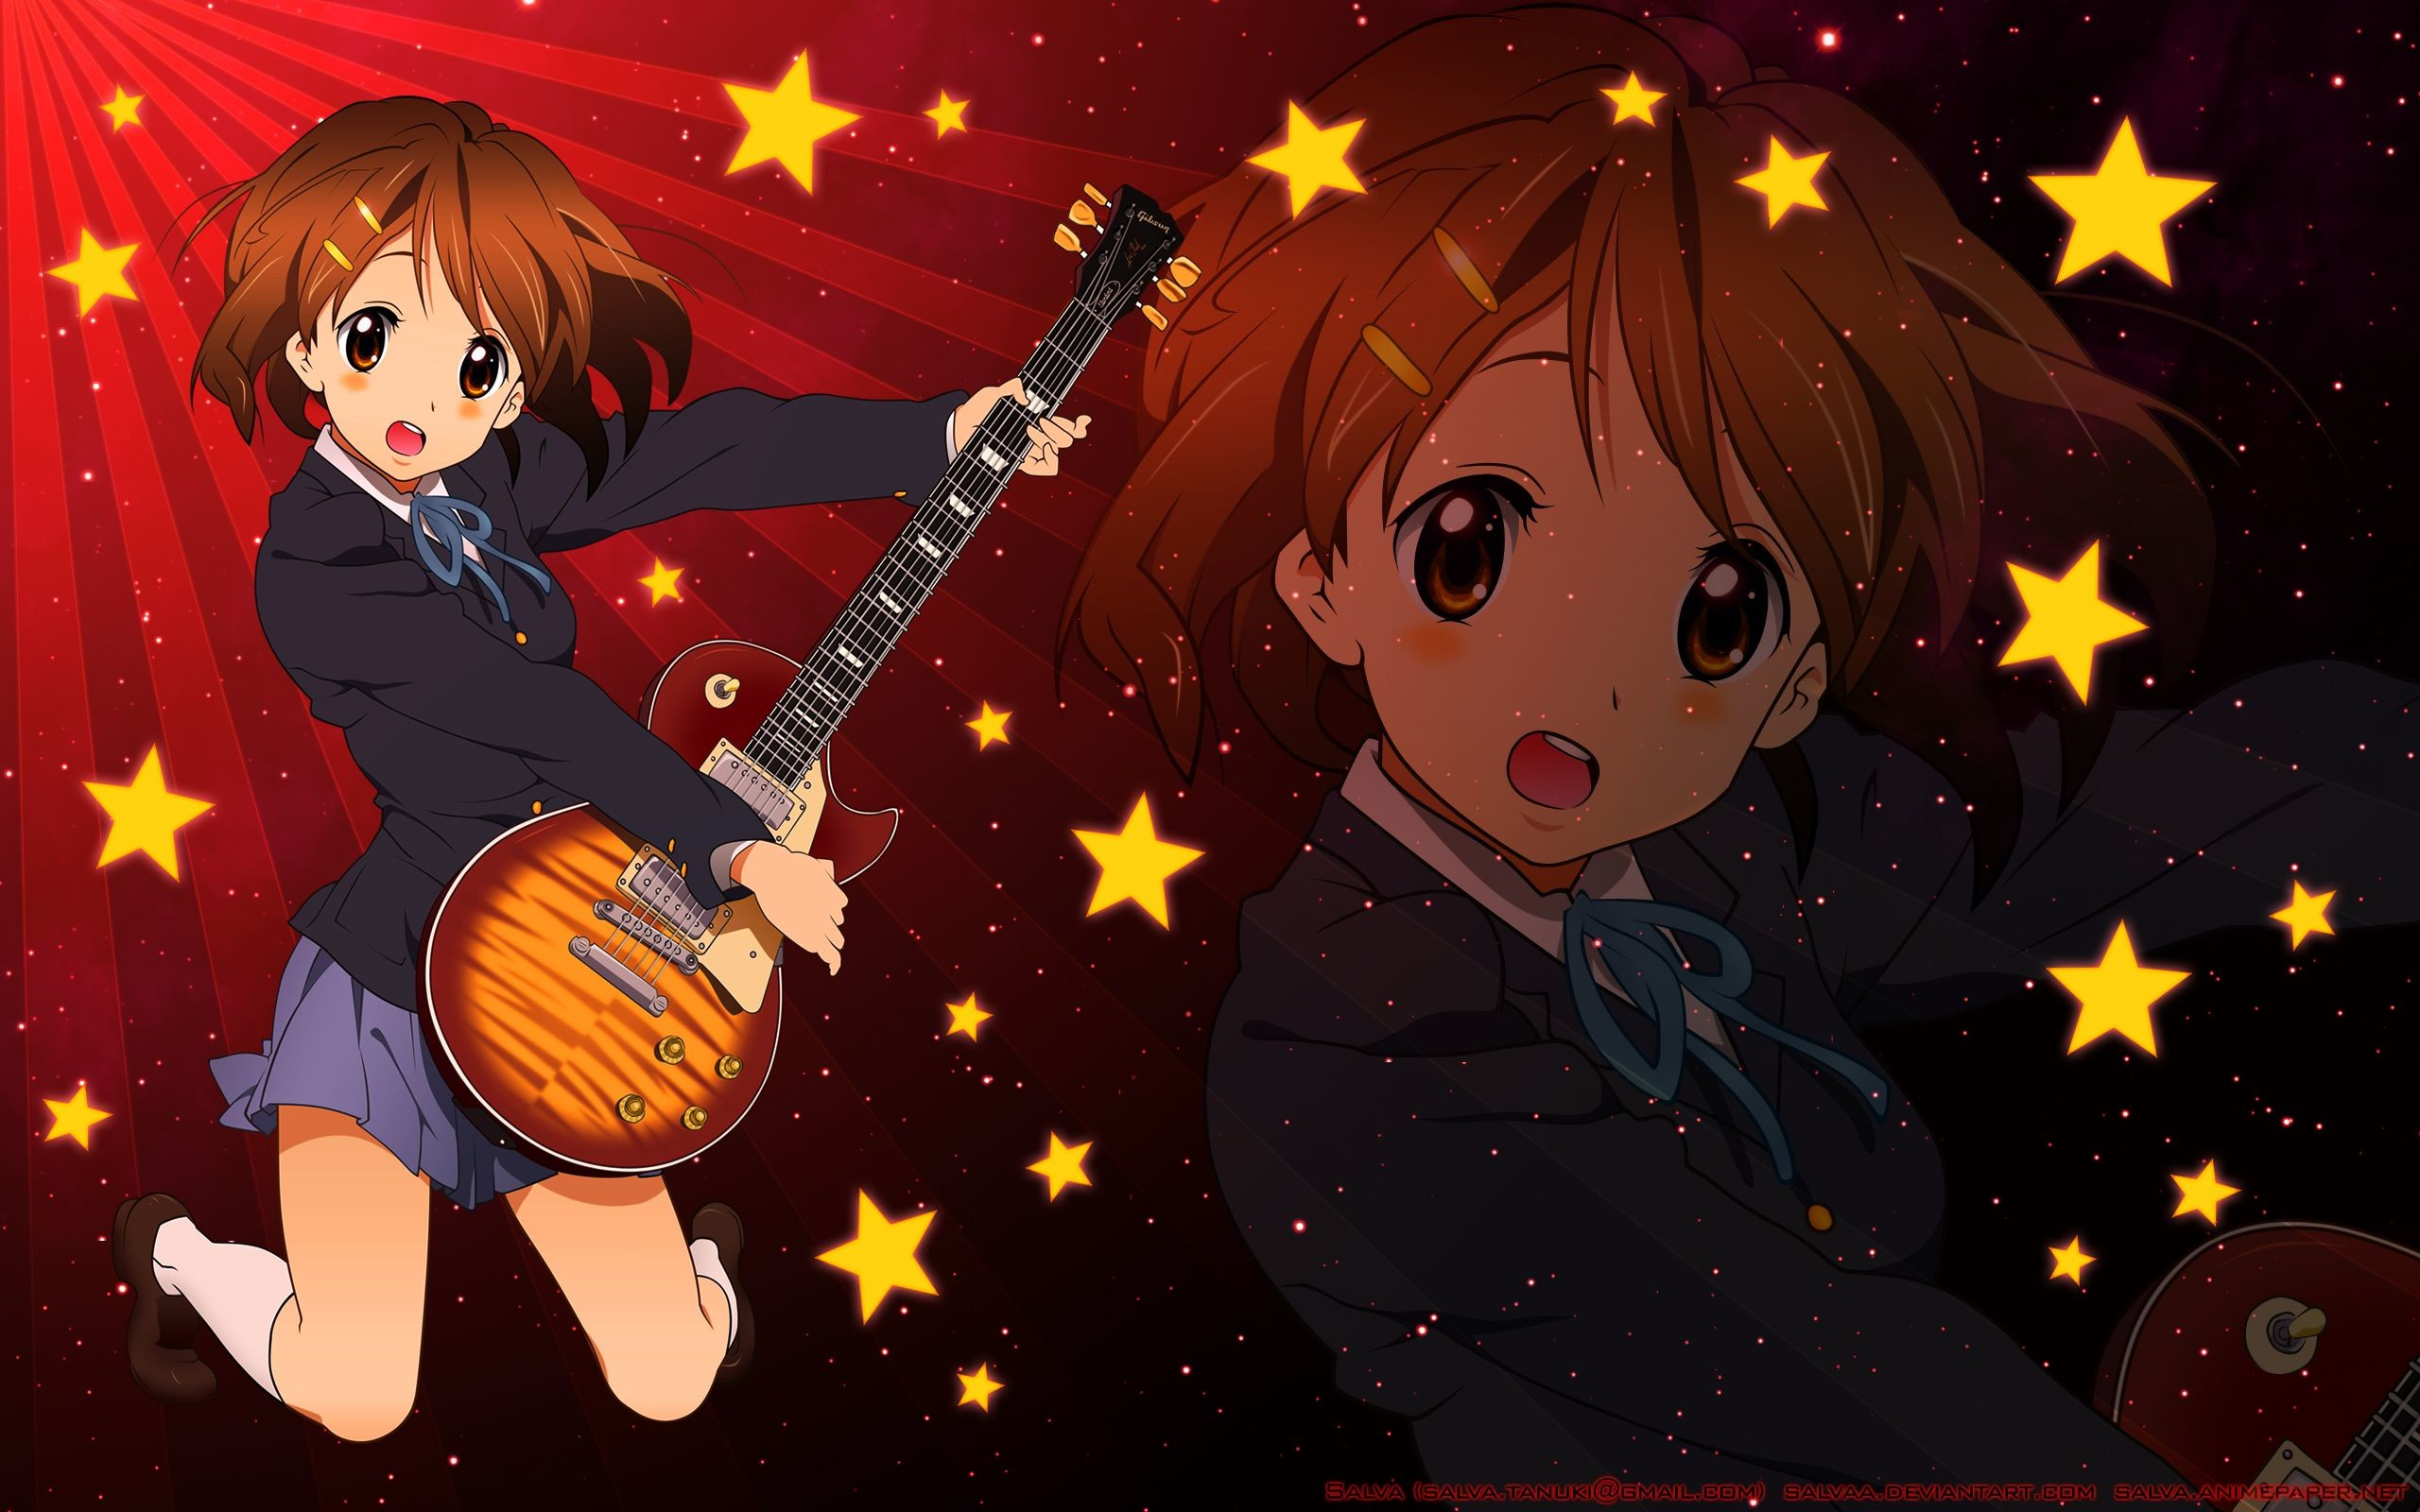 Res: 2560x1600, Anime Music Wallpaper In Hd